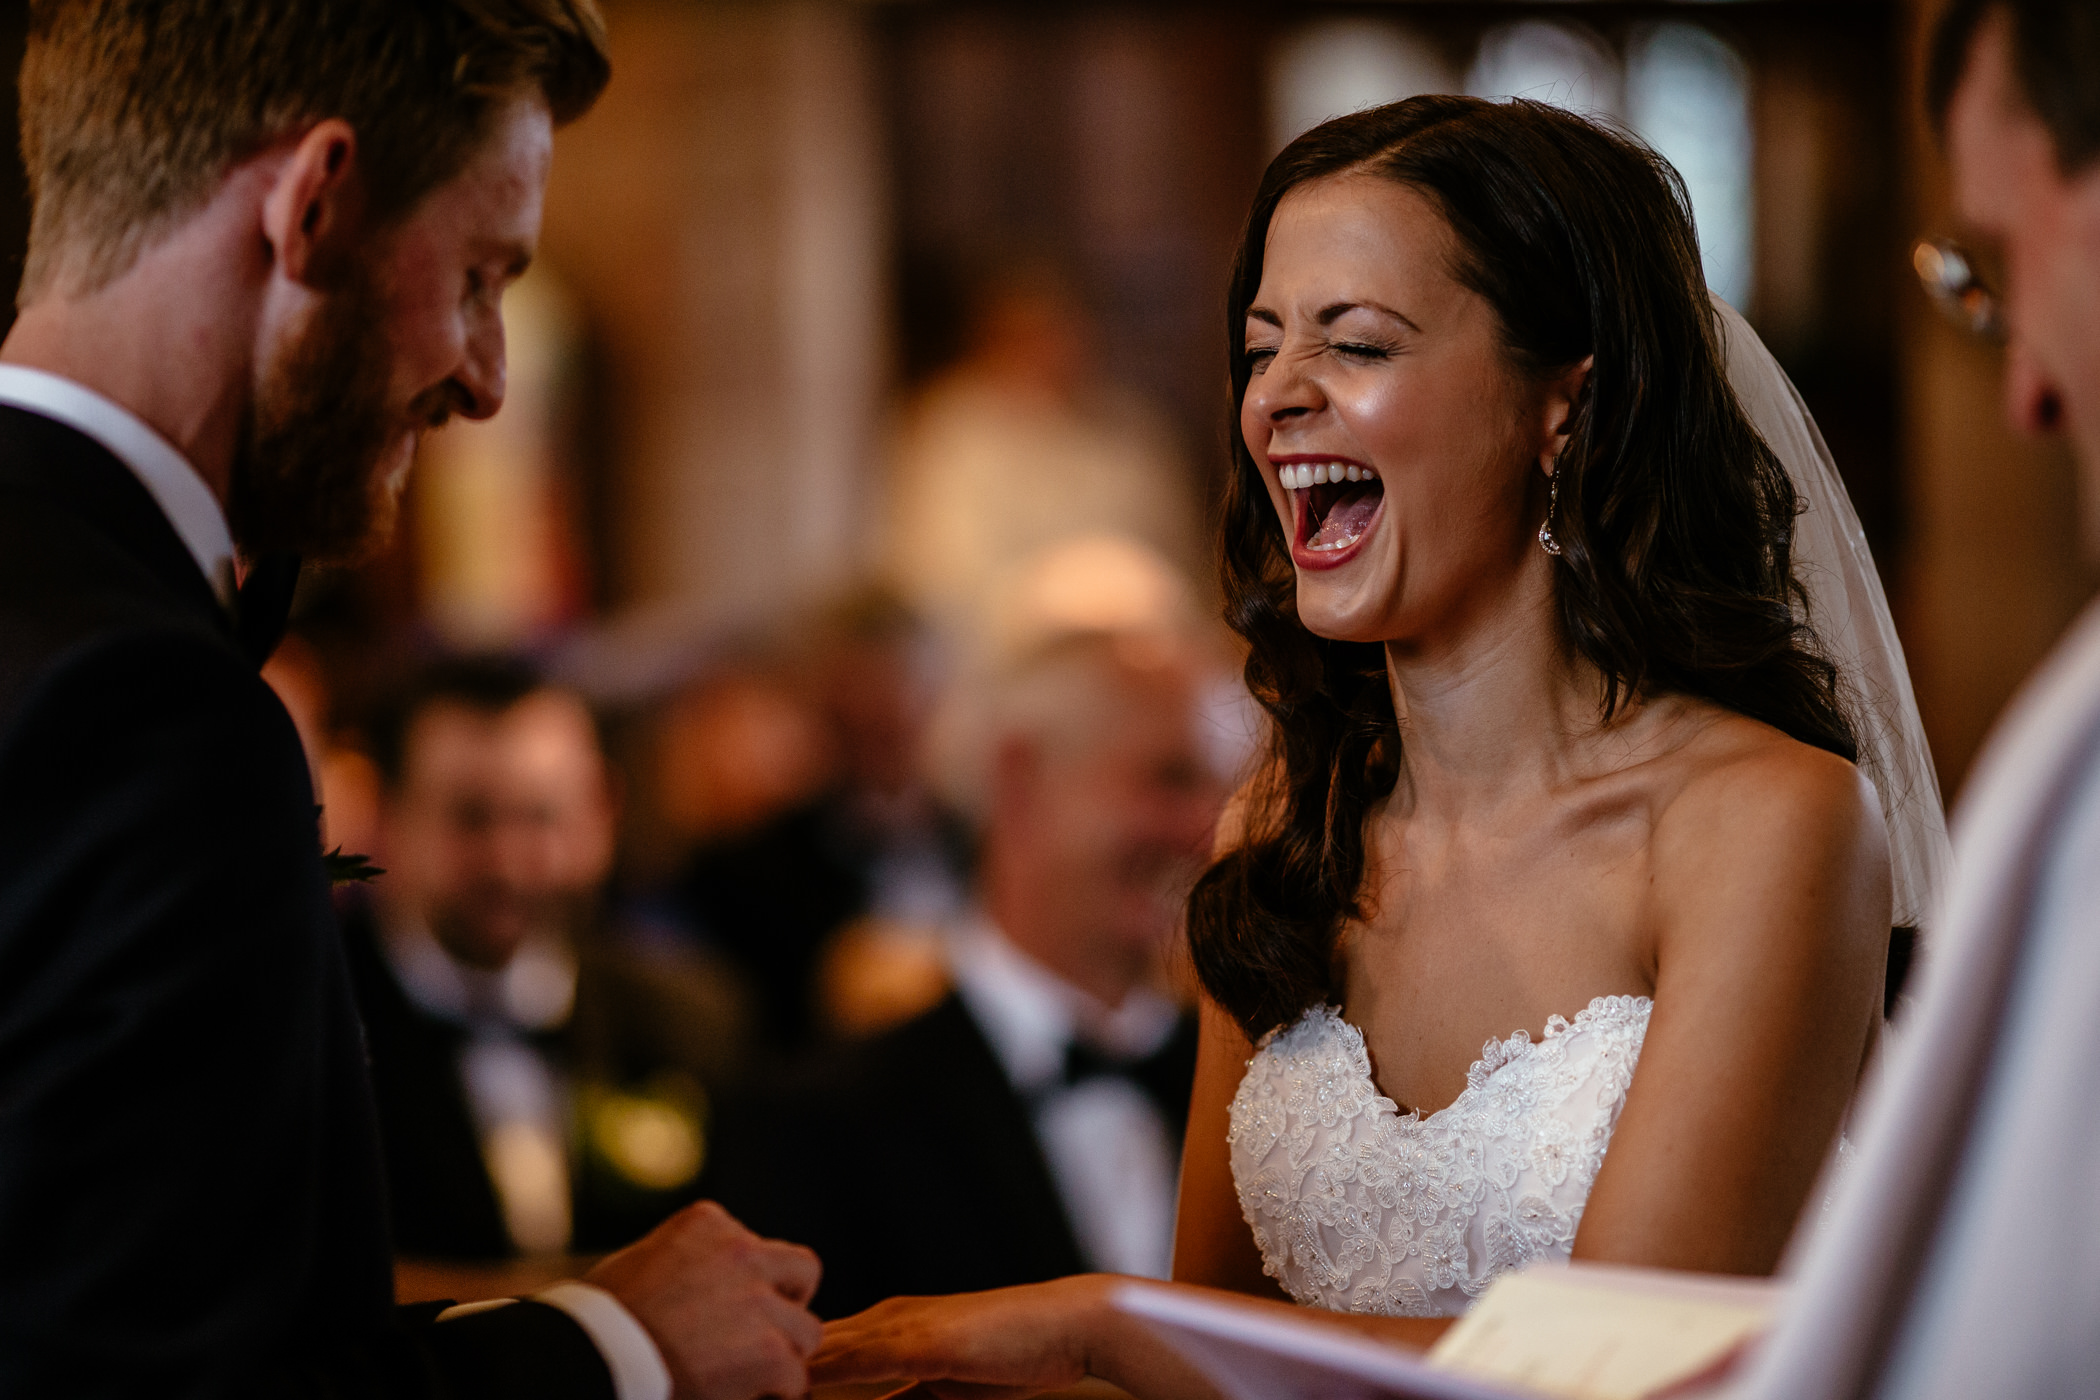 sansom-photography-becky-david-cheshire-wedding-27